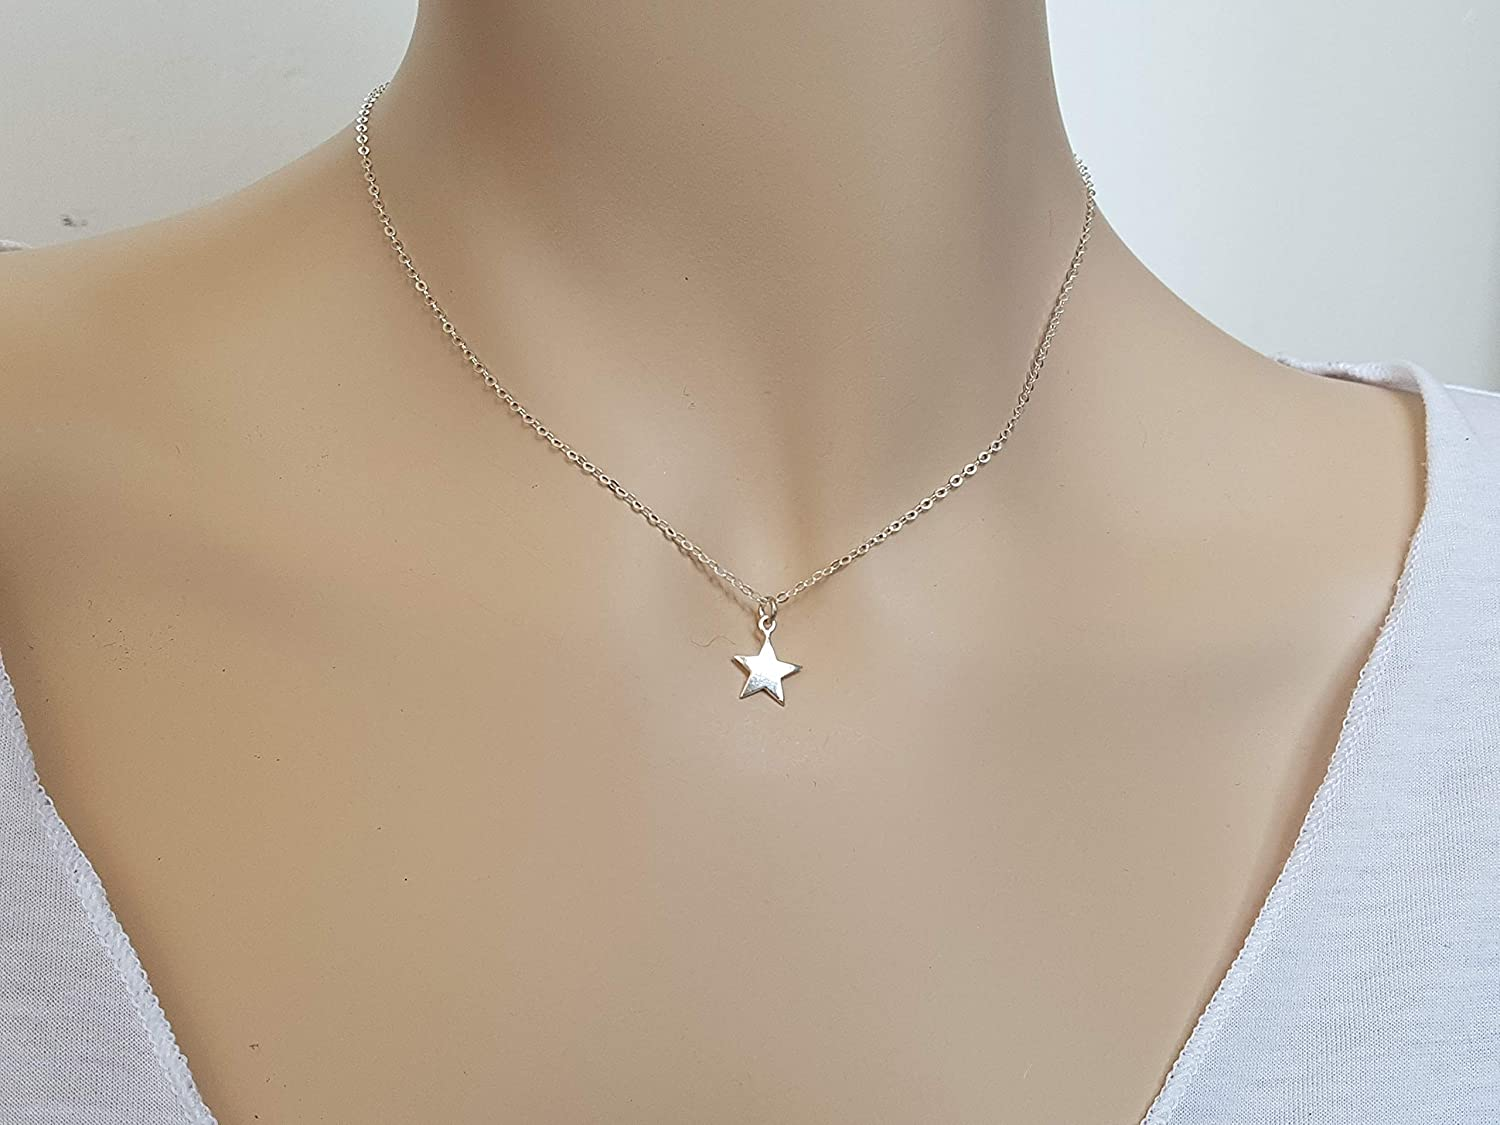 cd5d75a8626 Amazon.com: Tiny Star Necklace for Women, 925 Sterling Silver Charm ...